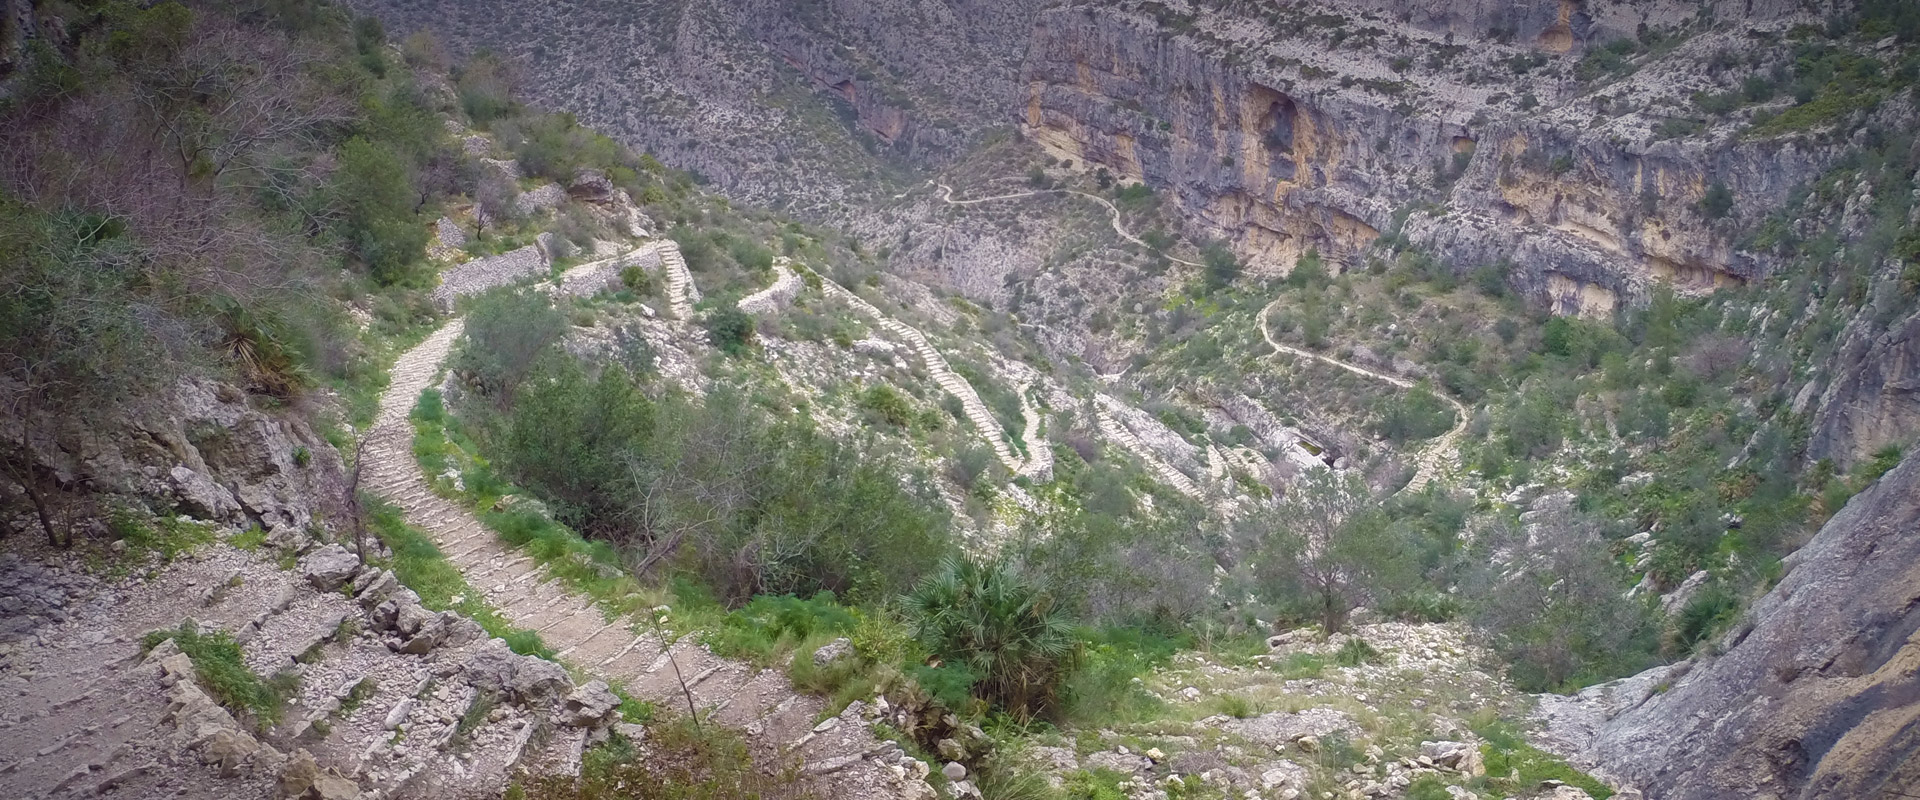 Stairs in hells gully